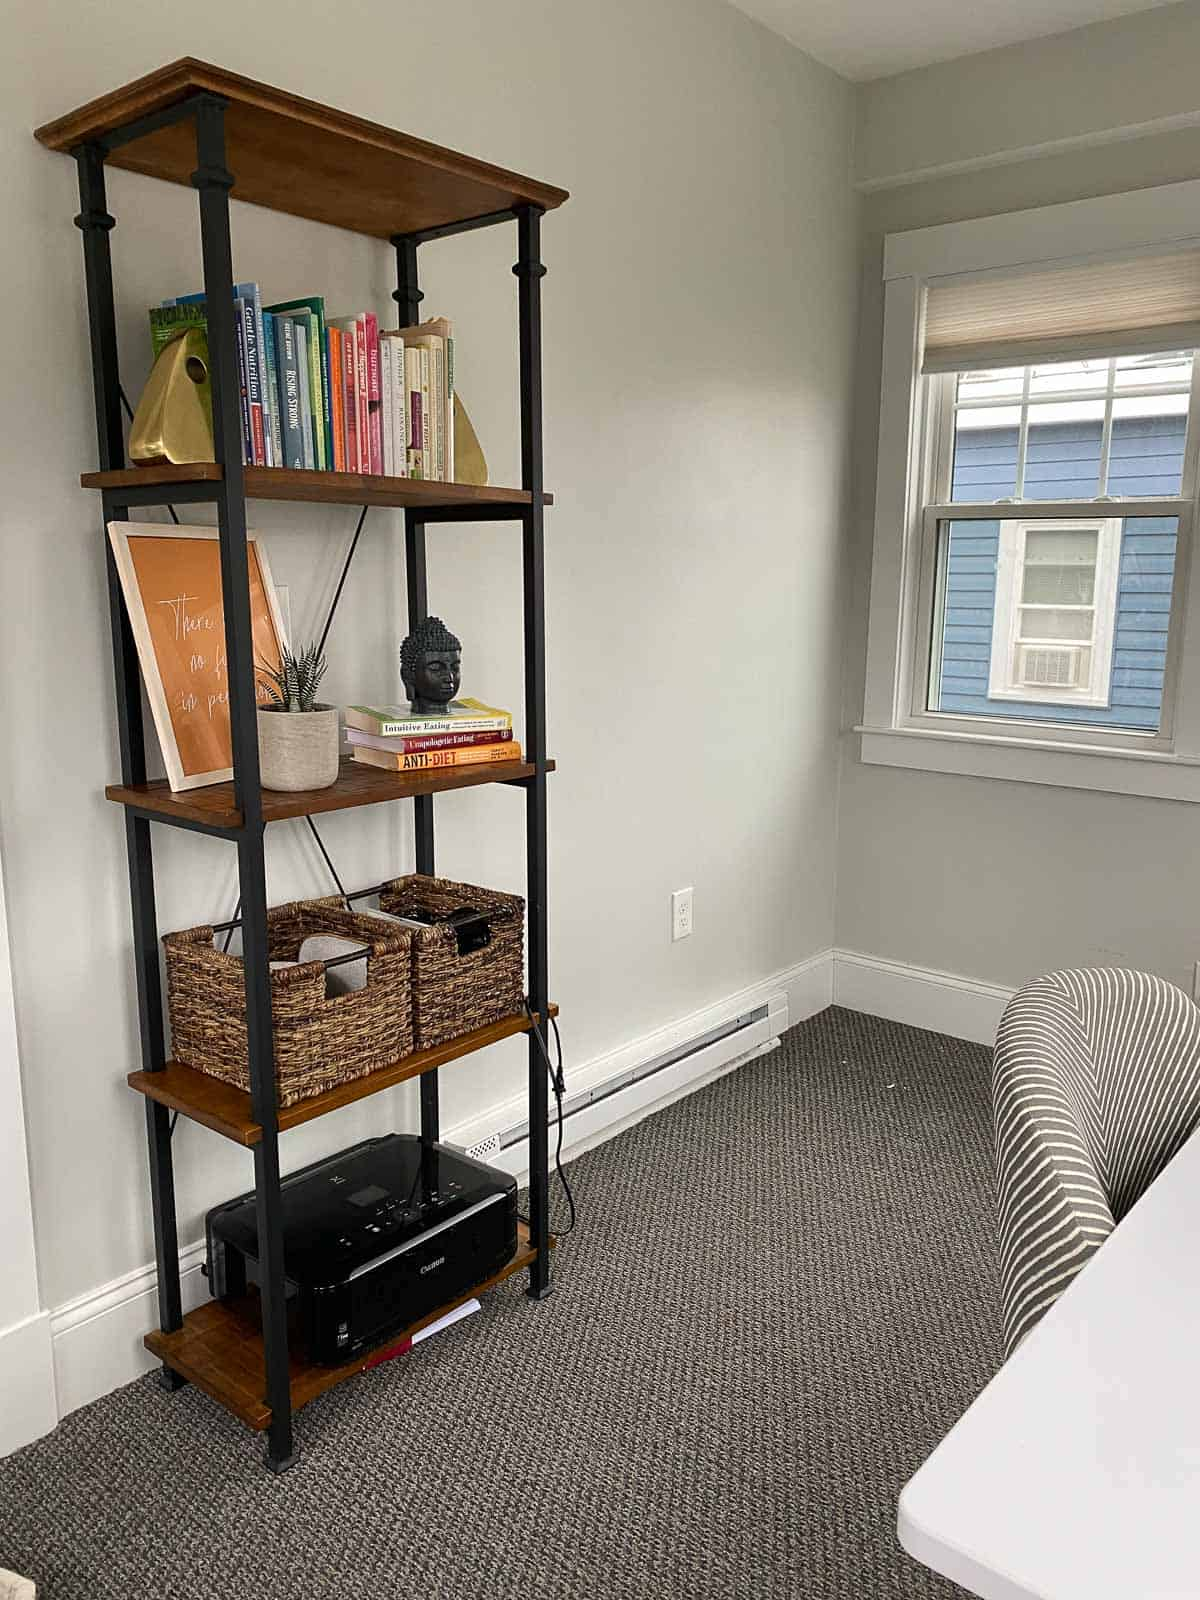 kara lydon second trimester pregnancy reorganize office room nesting project cleaning after photo bookshelf buddha head